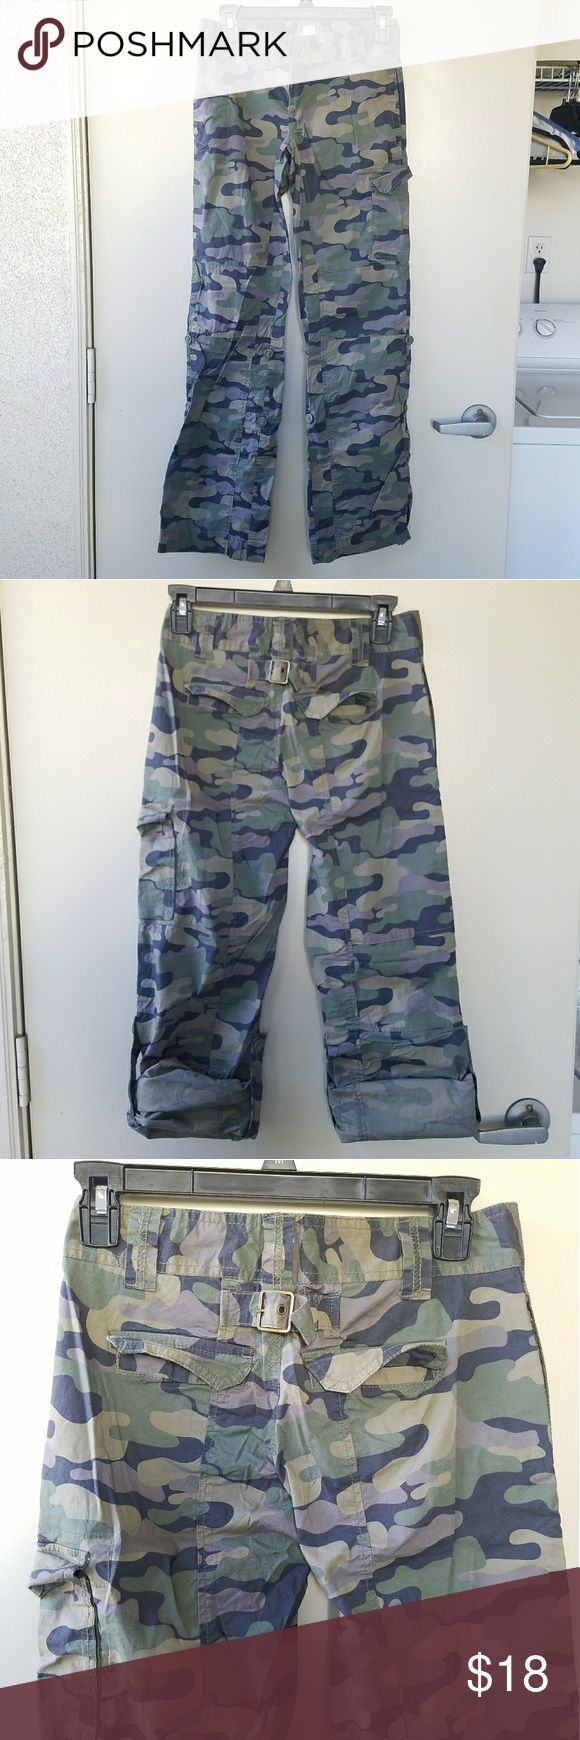 Old Navy / Camo Cargo Pants Old Navy Camo Low Waist Cargo Pants Size: 0 Old Navy Pants